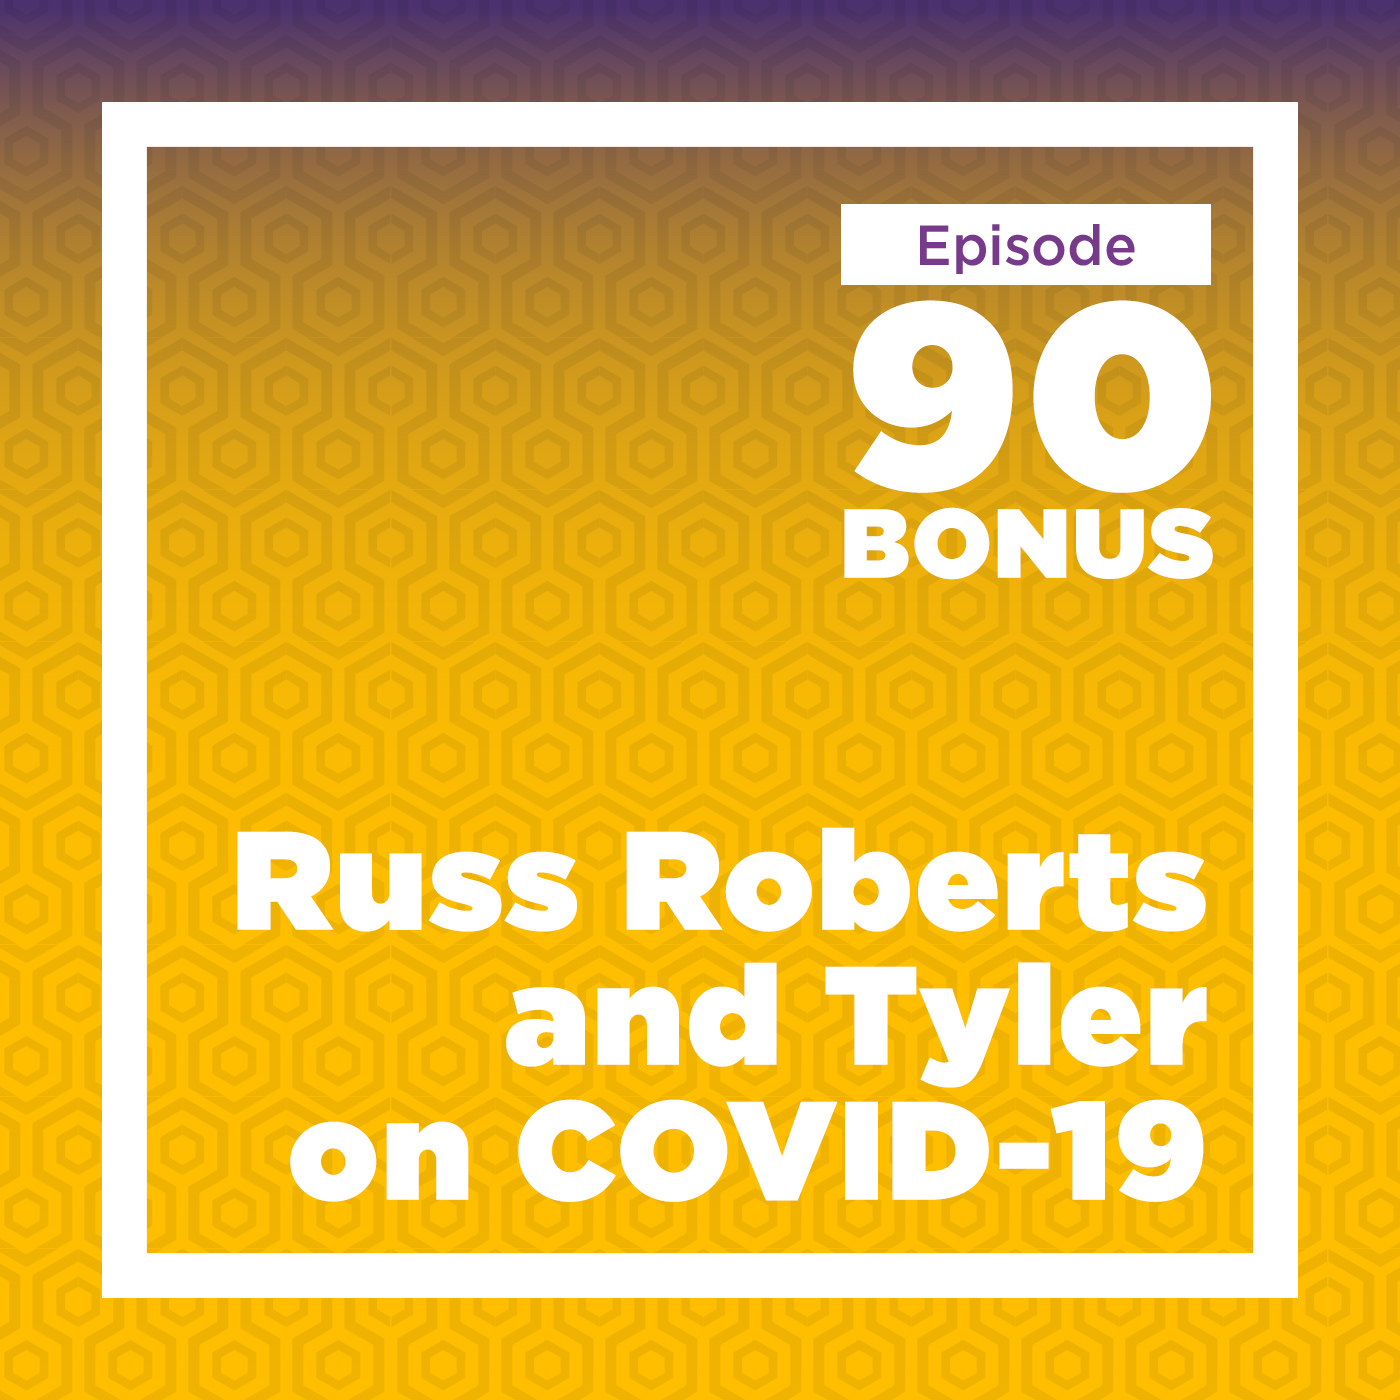 Russ Roberts and Tyler on COVID-19